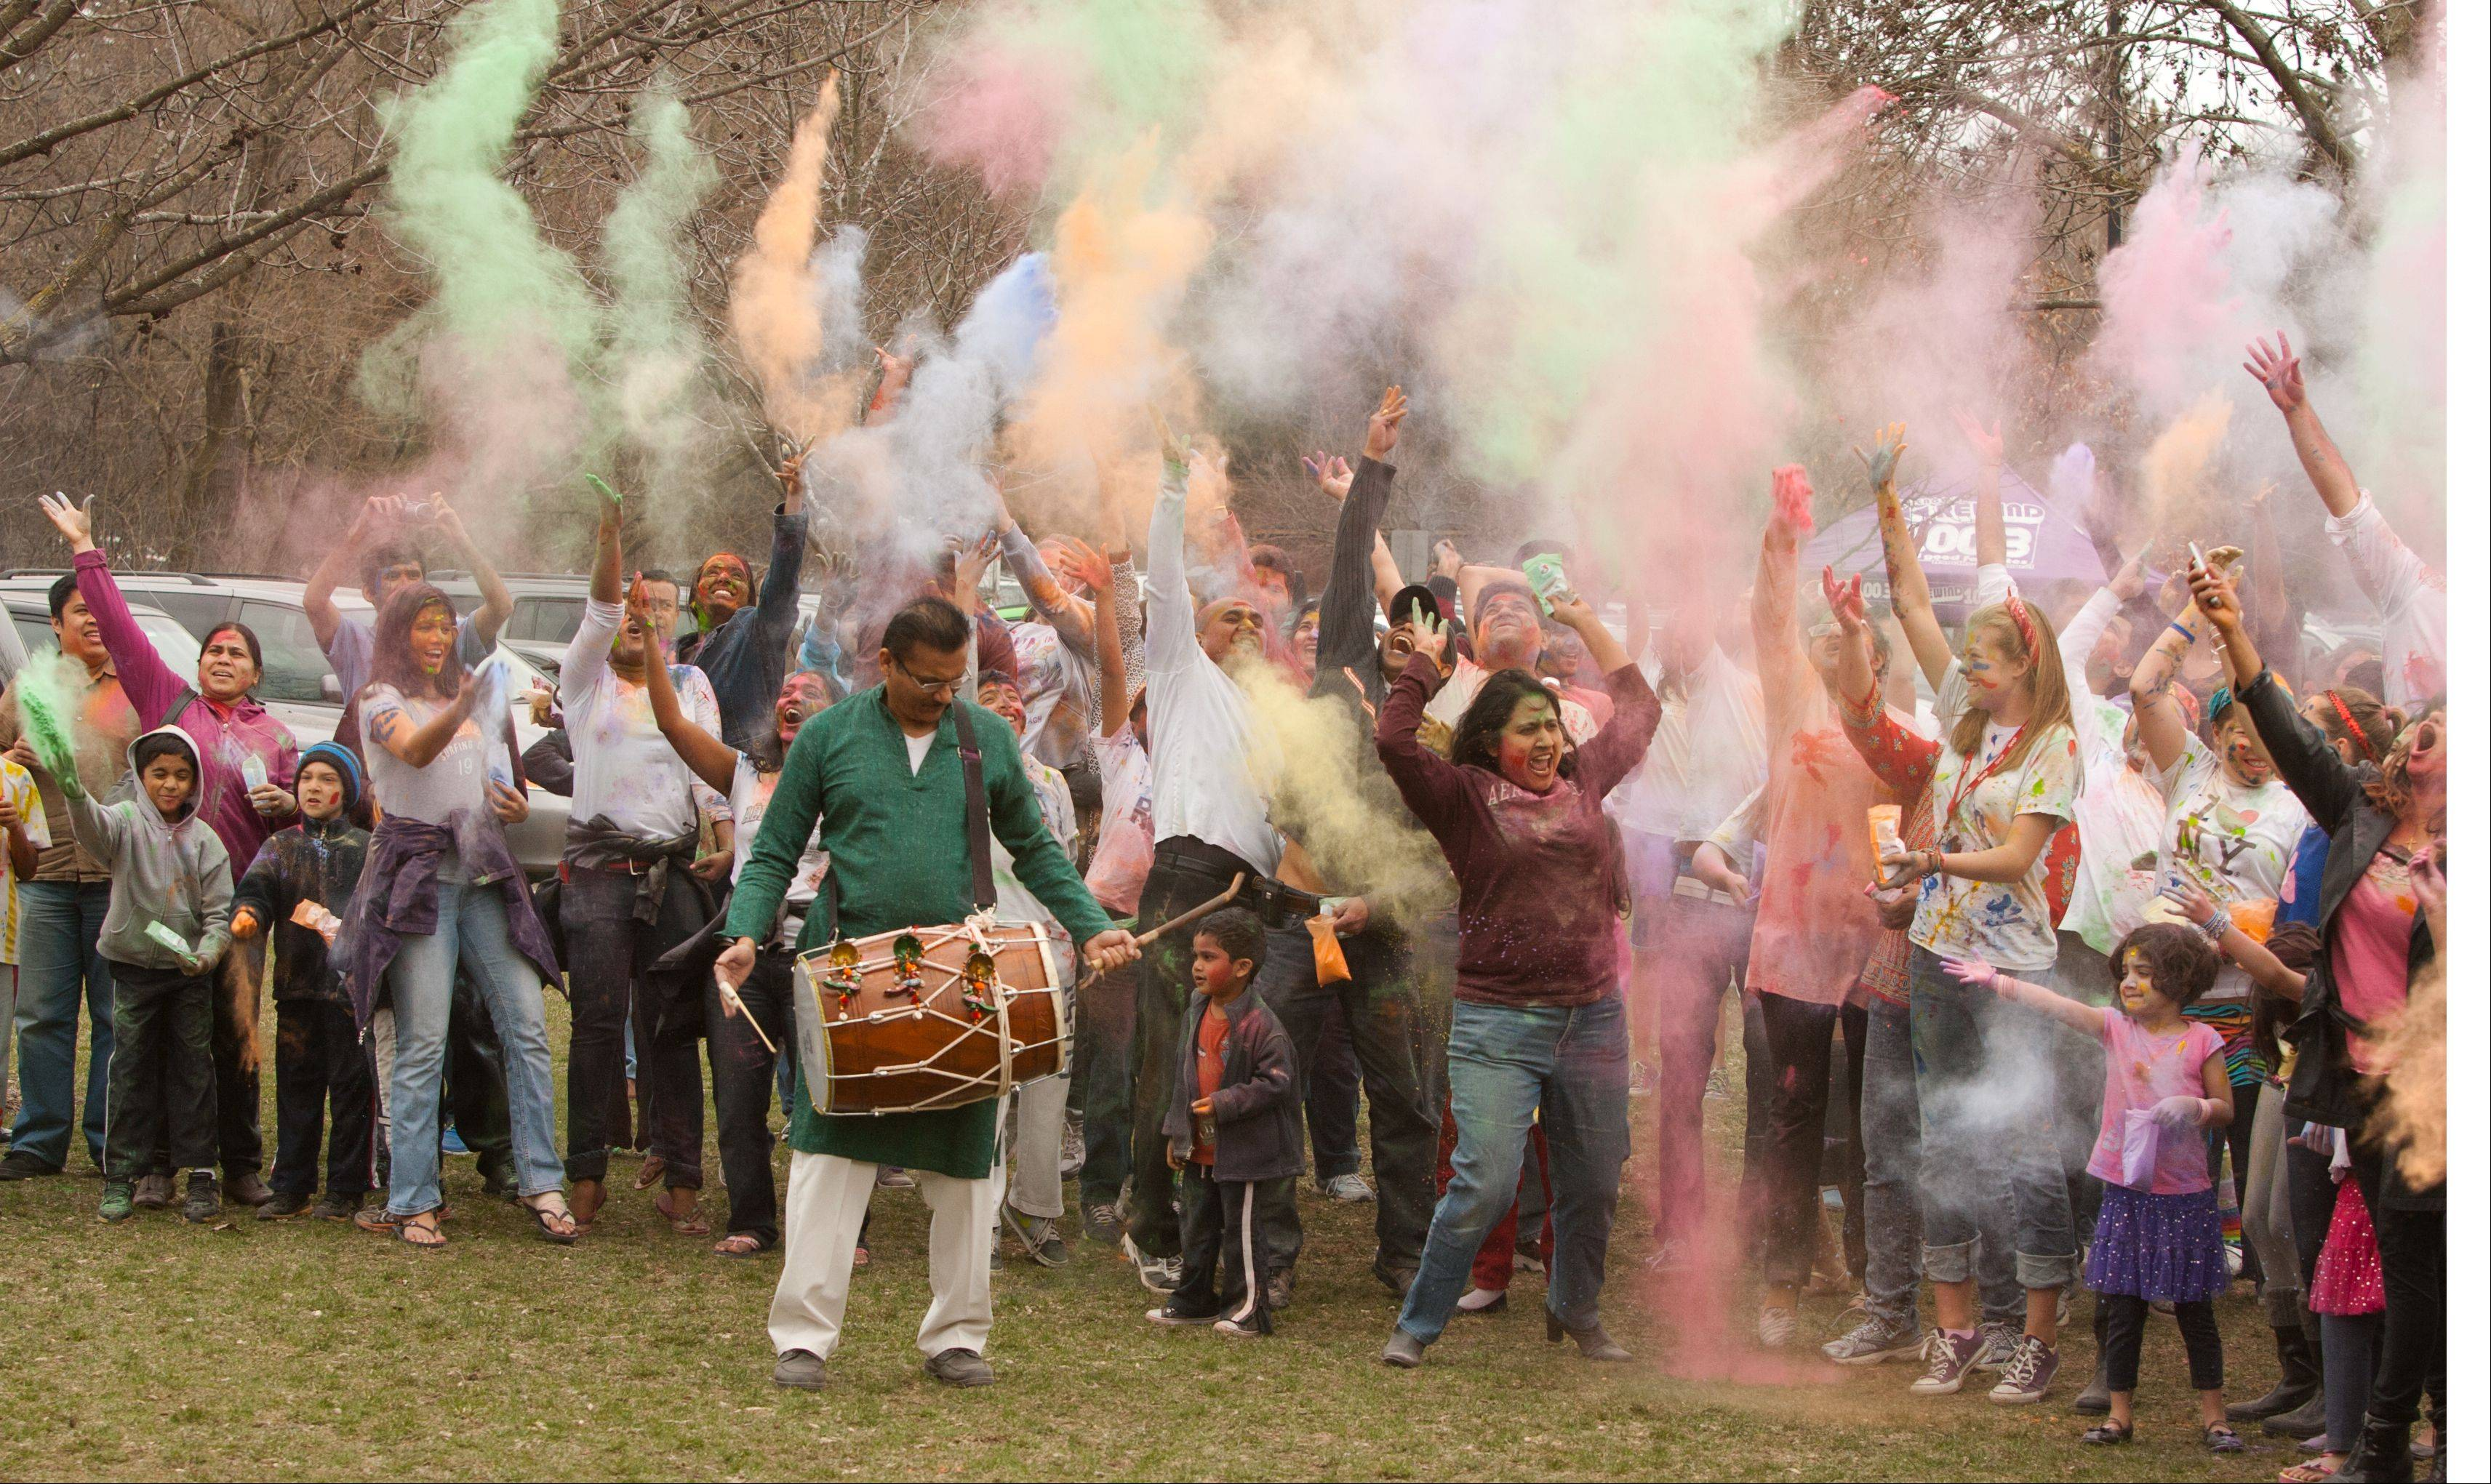 The Simply Vedic Cultural Society's celebration of the Festival of Colors marks the passing of winter and arrival of spring, during a recent event at the Grand Pavillion-Riverwalk in Naperville. Welcoming spring and turning over a new leaf, particpants throw their worries to the wind with bags of organic dry colors.